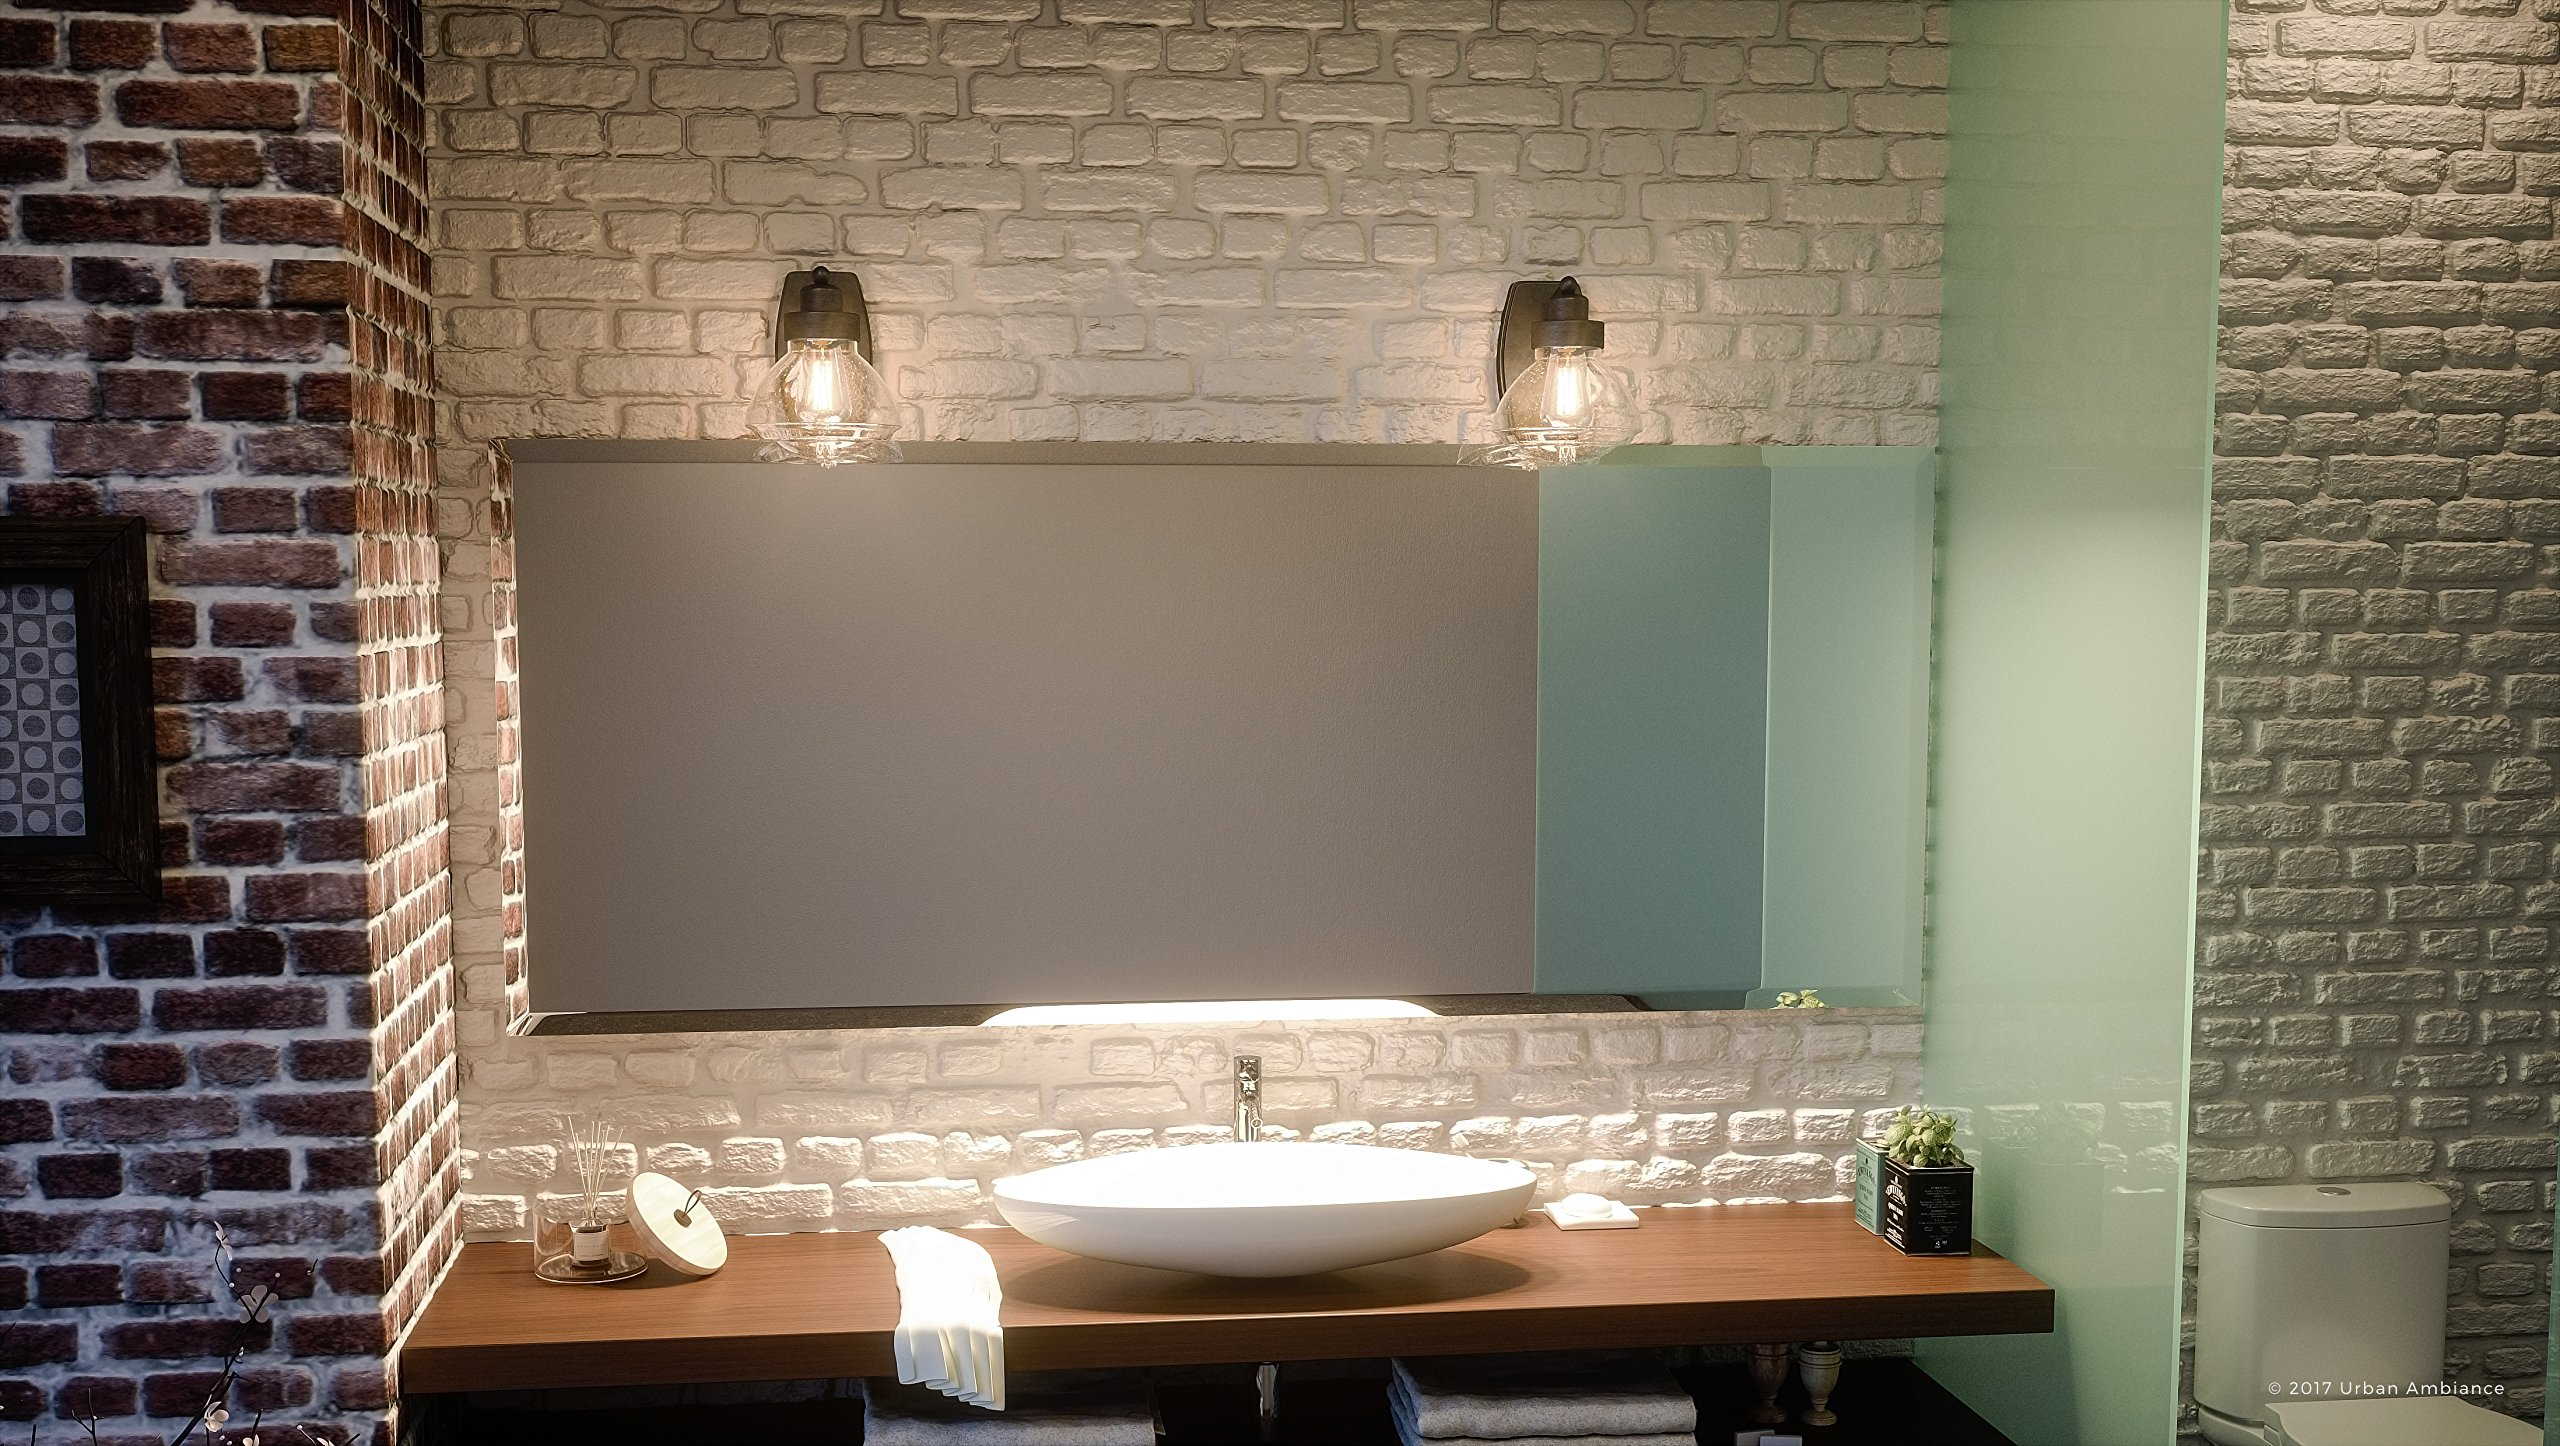 Luxury Transitional Bathroom Vanity Light, Small Size: 8.75'' H x 6.75'' W, with Rustic Style Elements, Oil Rubbed Parisian Bronze Finish and Seeded Schoolhouse Glass, UQL2650 by Urban Ambiance by Urban Ambiance (Image #2)